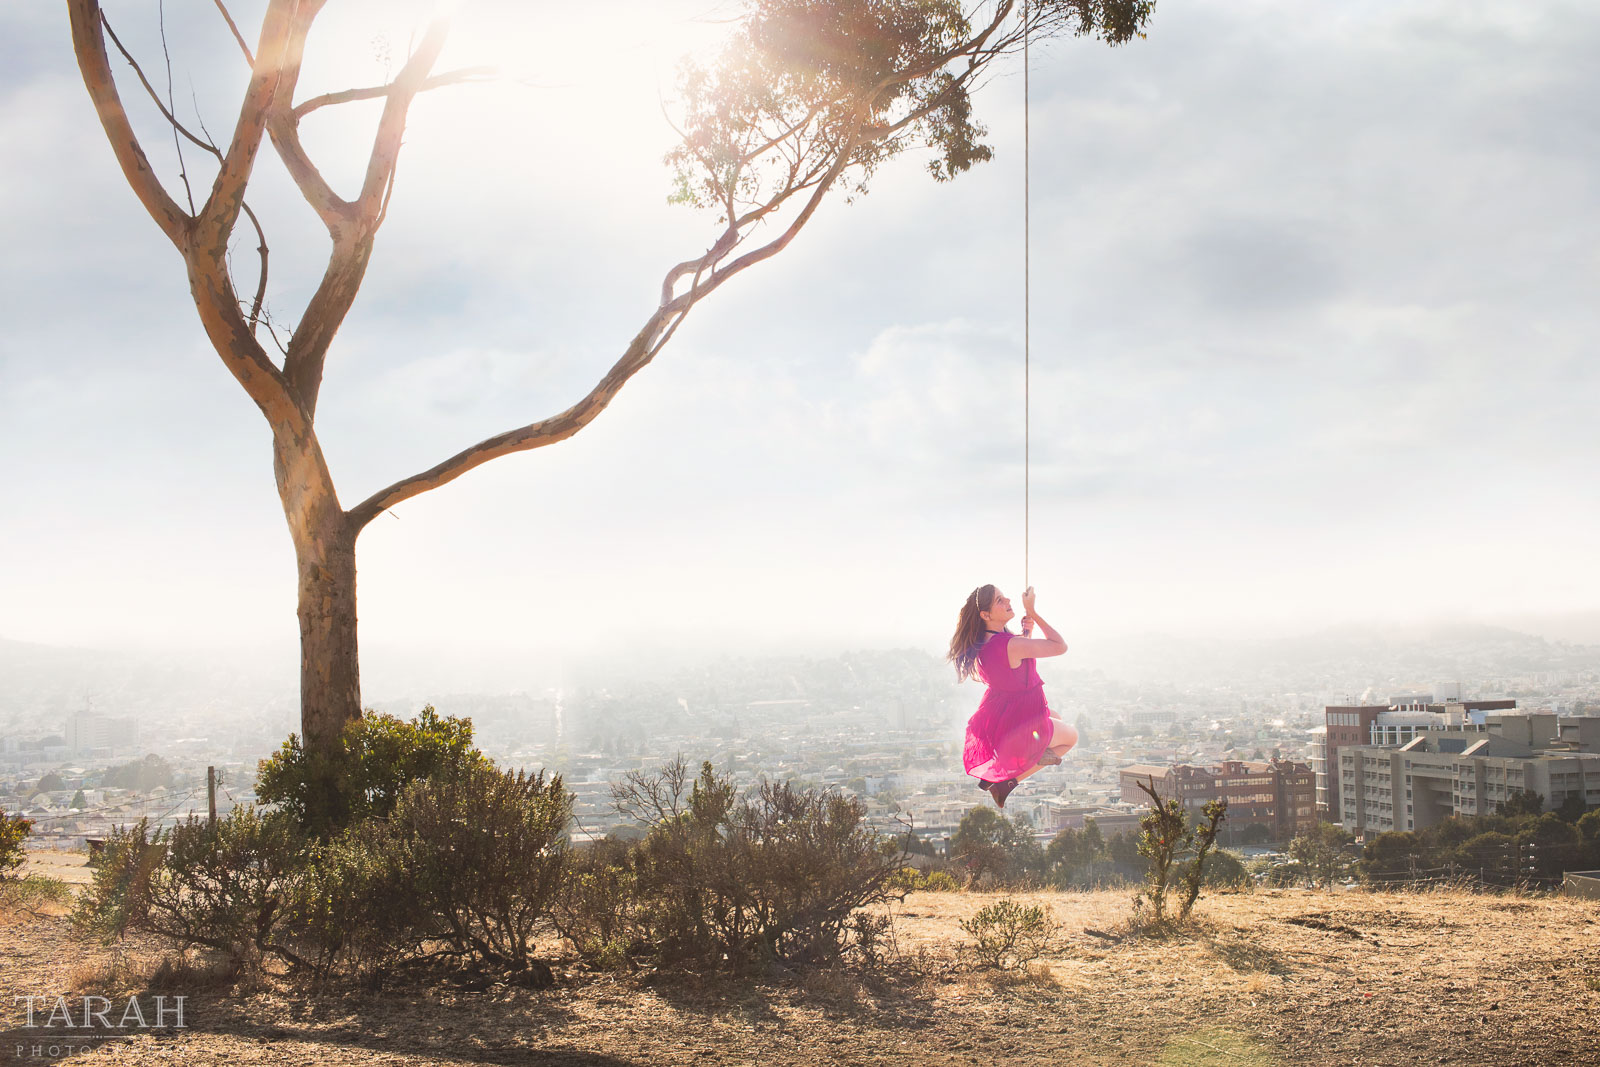 photo of girl on a swing overlooking San Francisco by Tarah Beaven